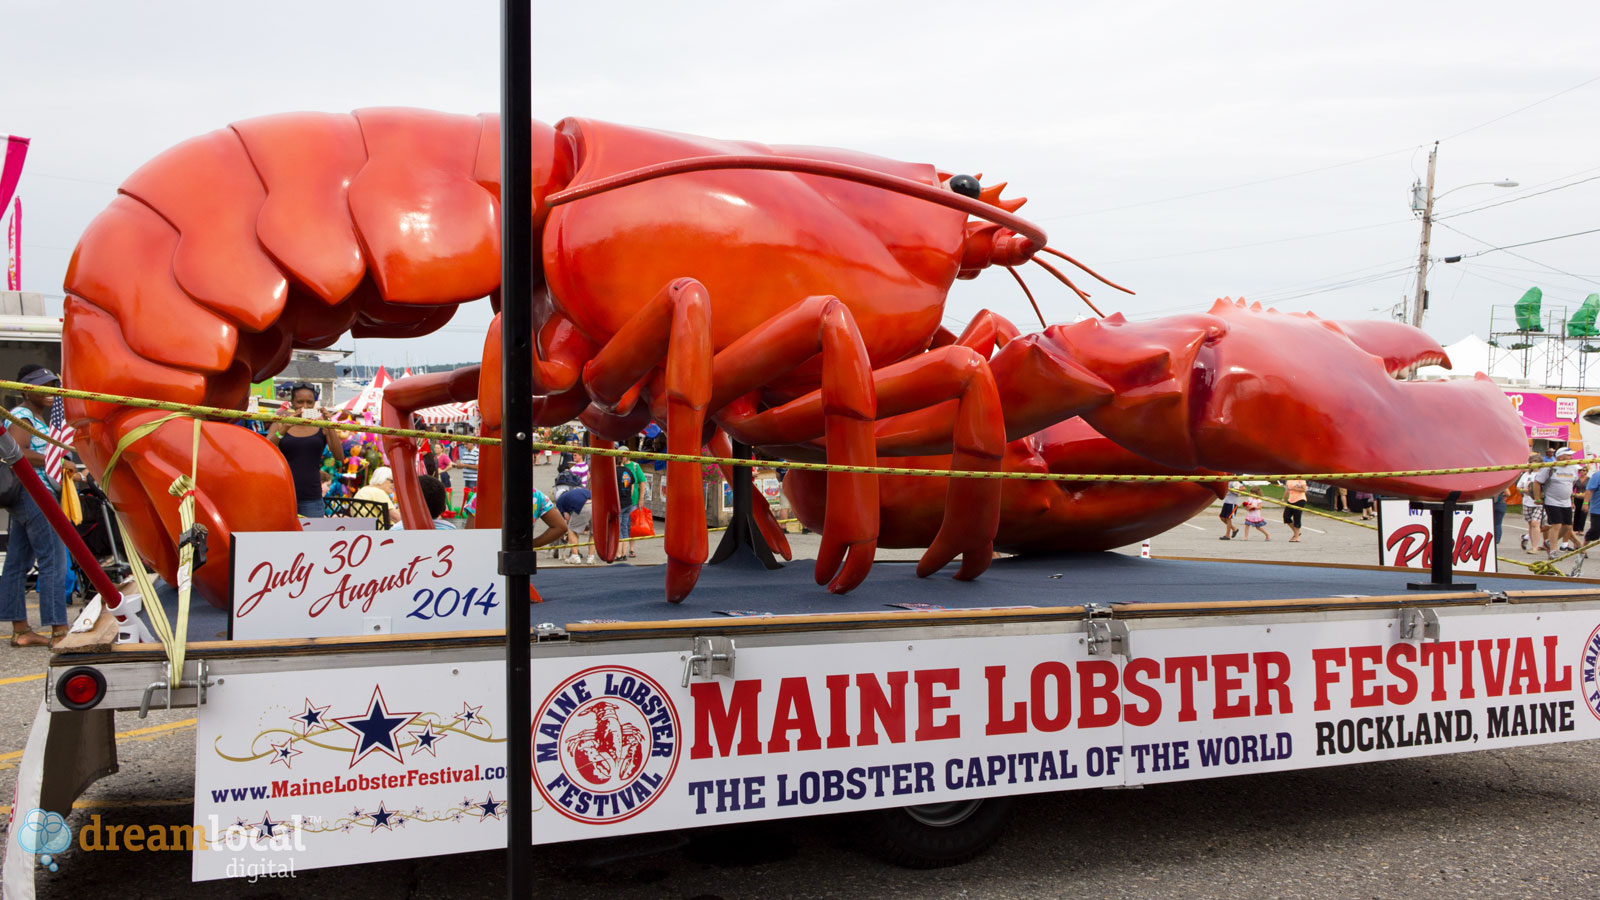 Maine Lobster Festival: 72nd Annual Celebration of All Things